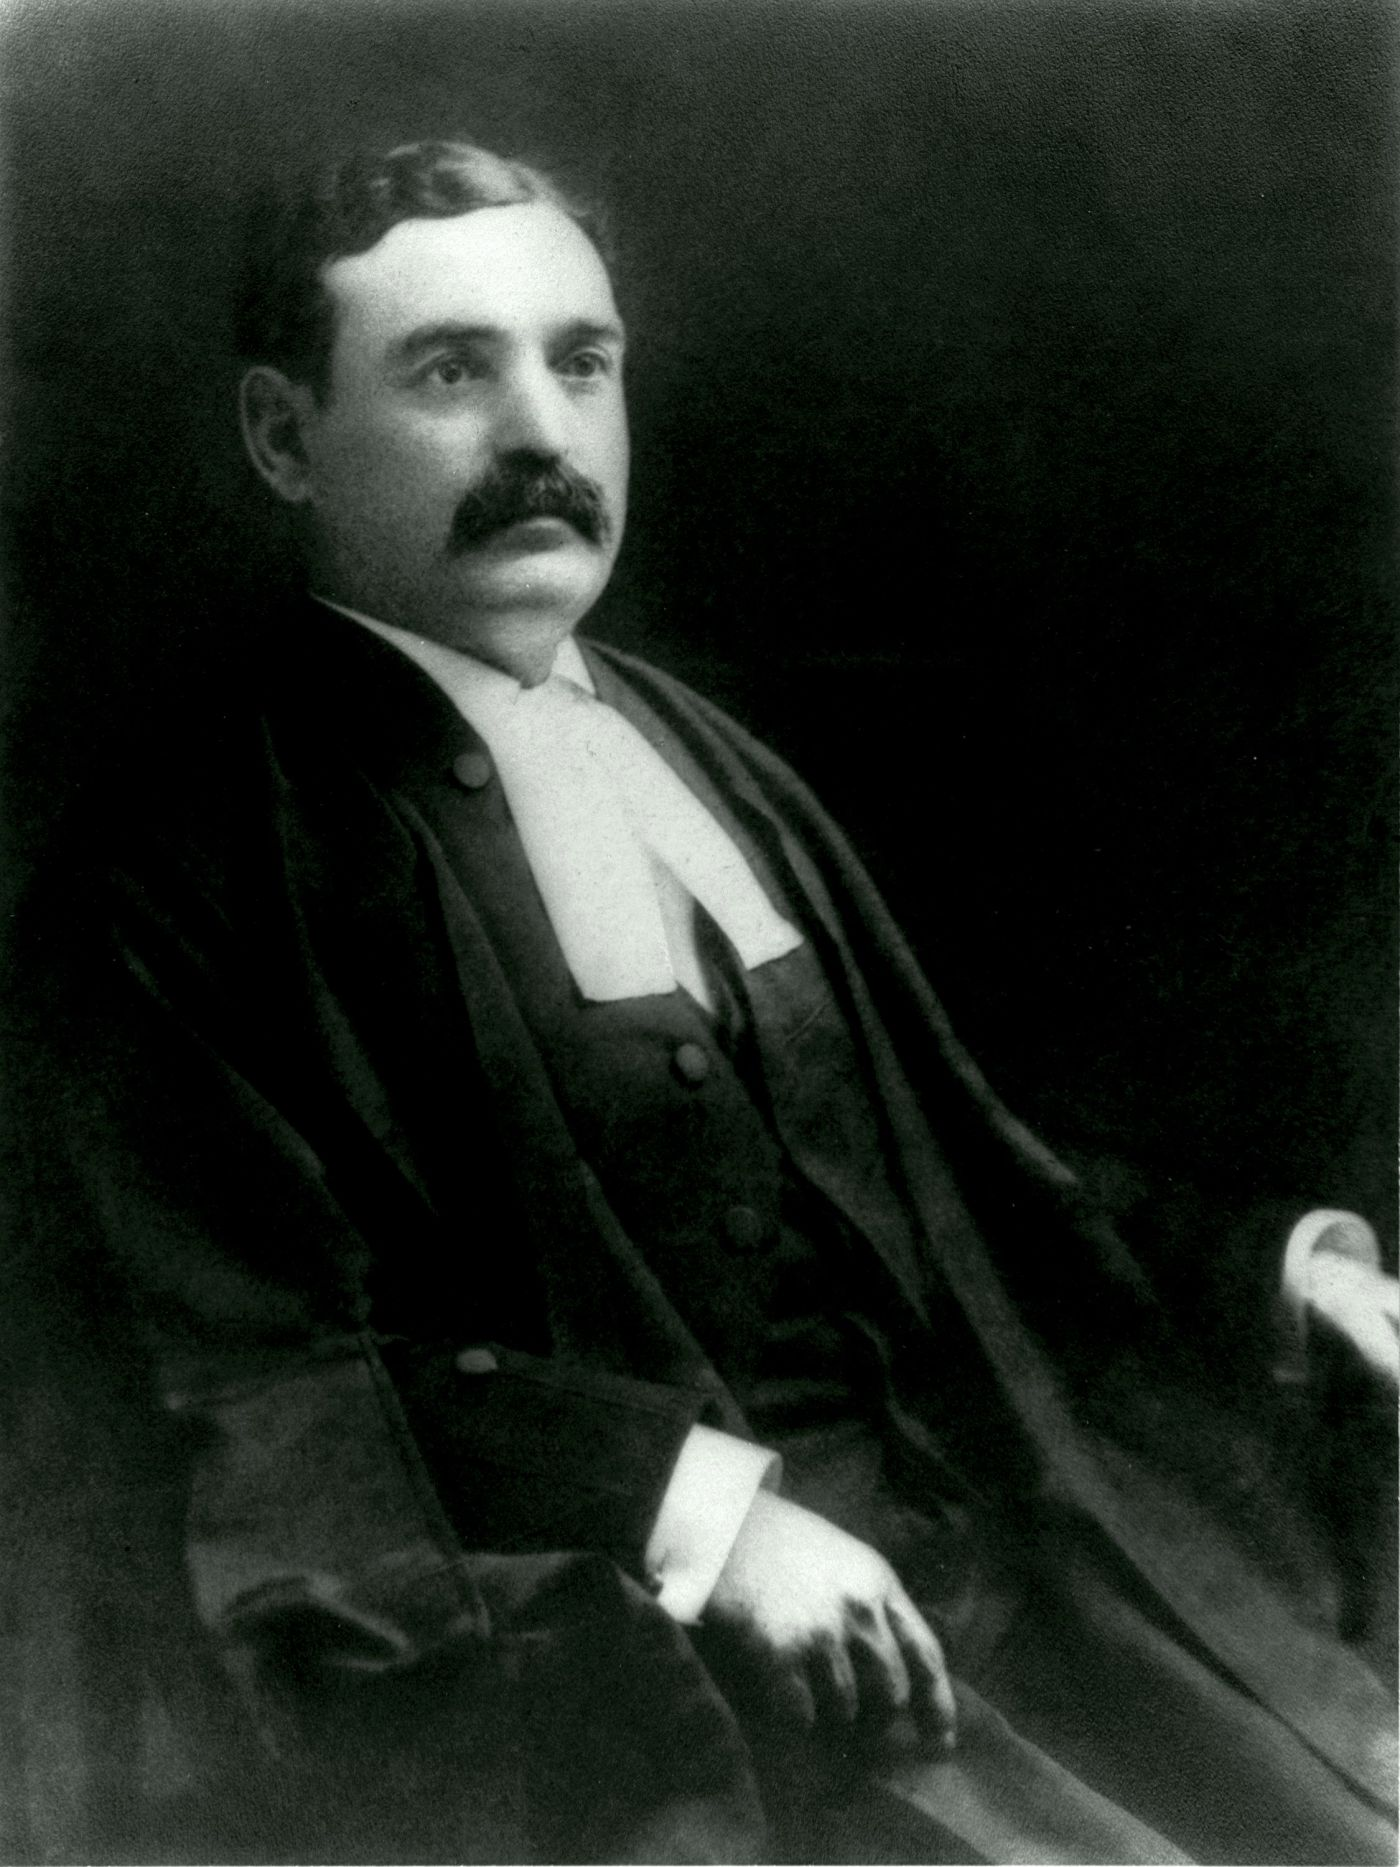 Black and white studio photograph of a middle-aged man sporting a mustache. He wears the long, loose gown and white collar of a lawyer.